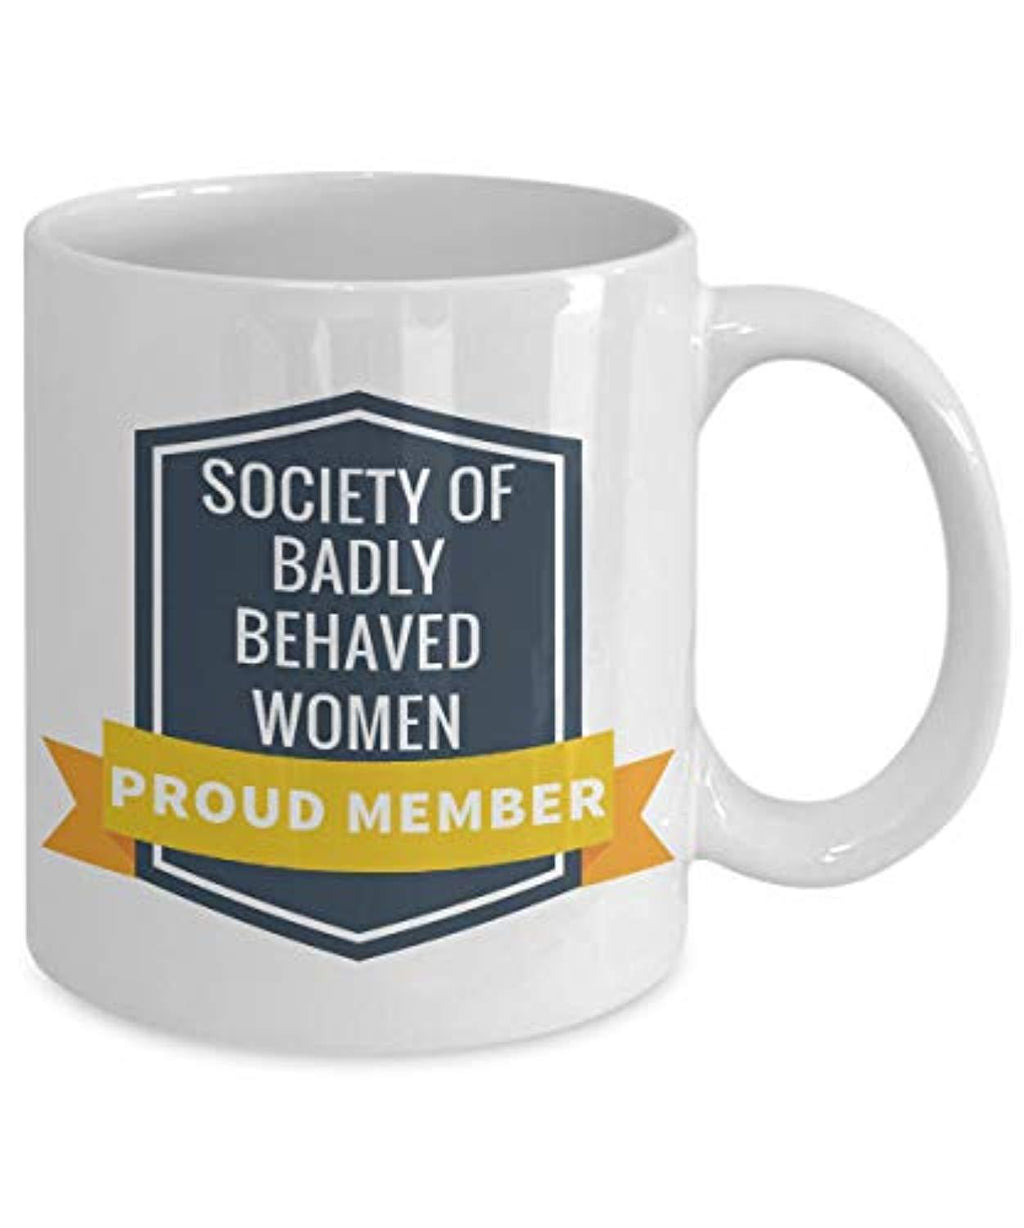 Society Of Badly Behaved Women Proud Member Mug Funny Coffee Cup